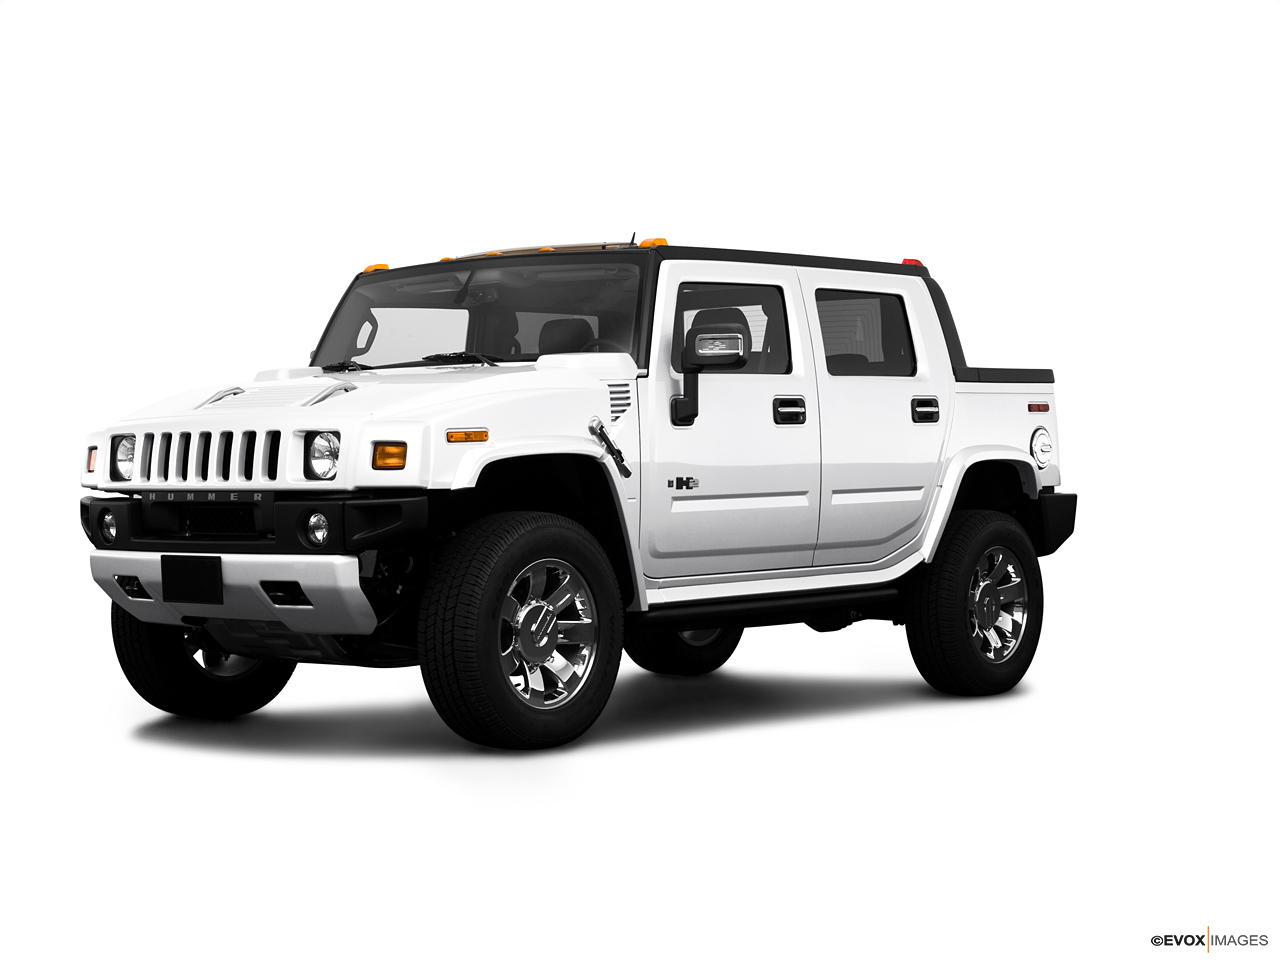 hummer service by top rated mechanics at the convenience of your home or  office